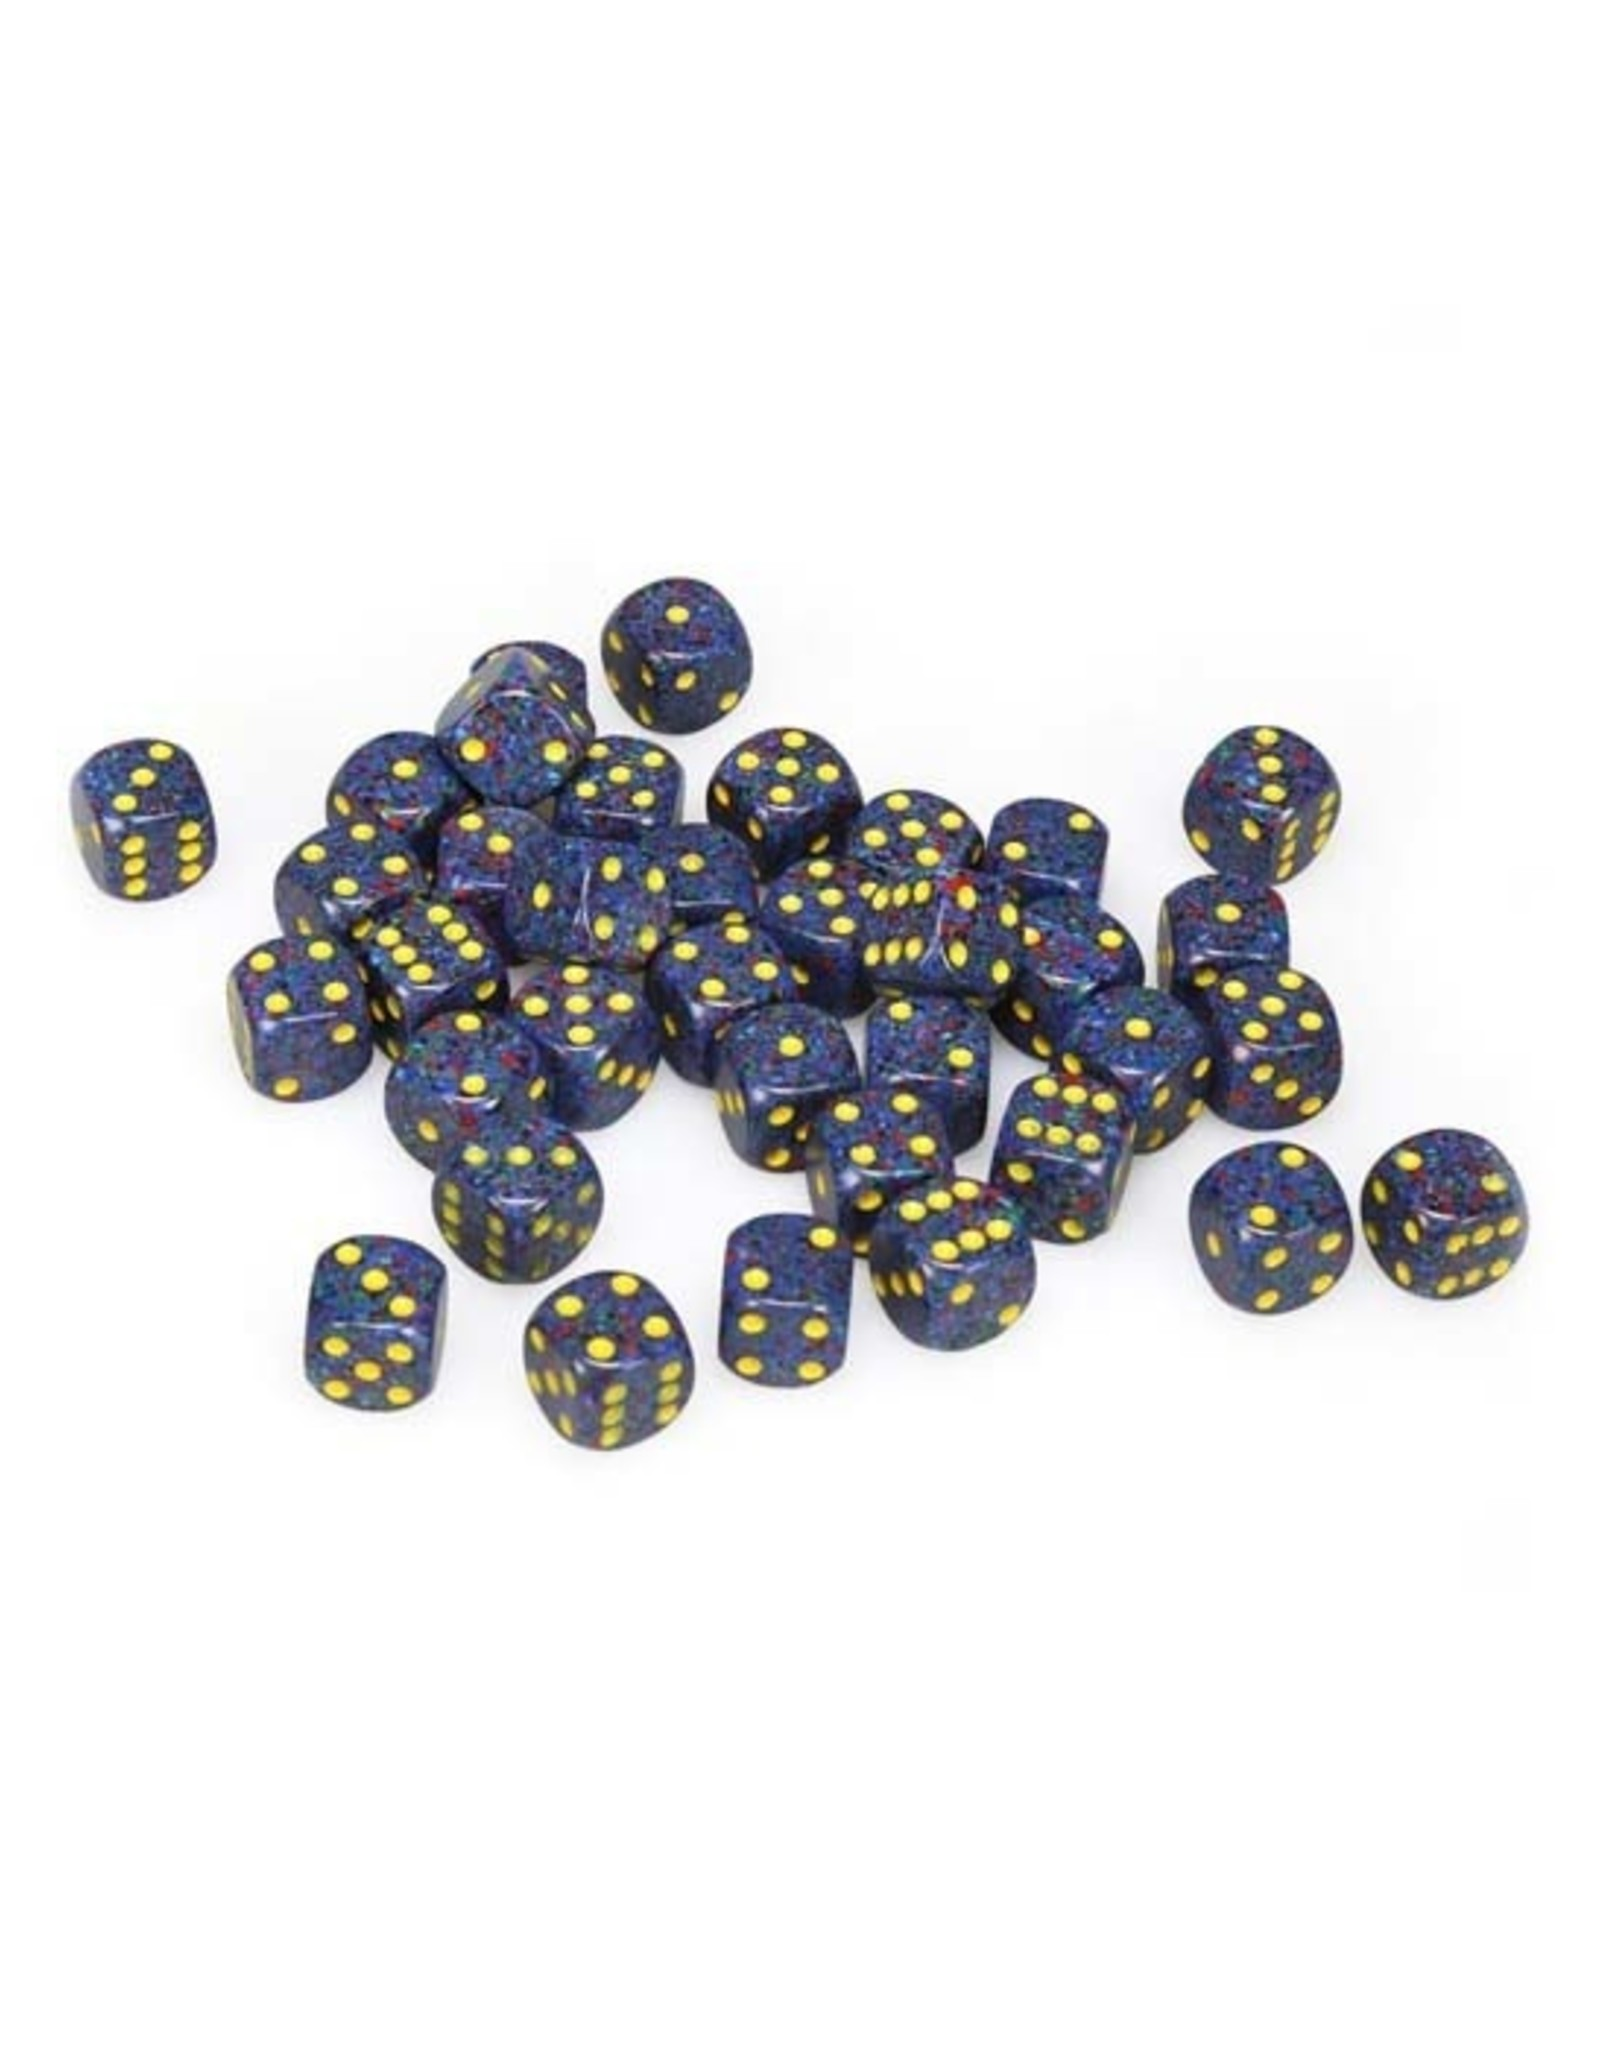 Chessex Chessex: 12mm D6 - Speckled - Twilight